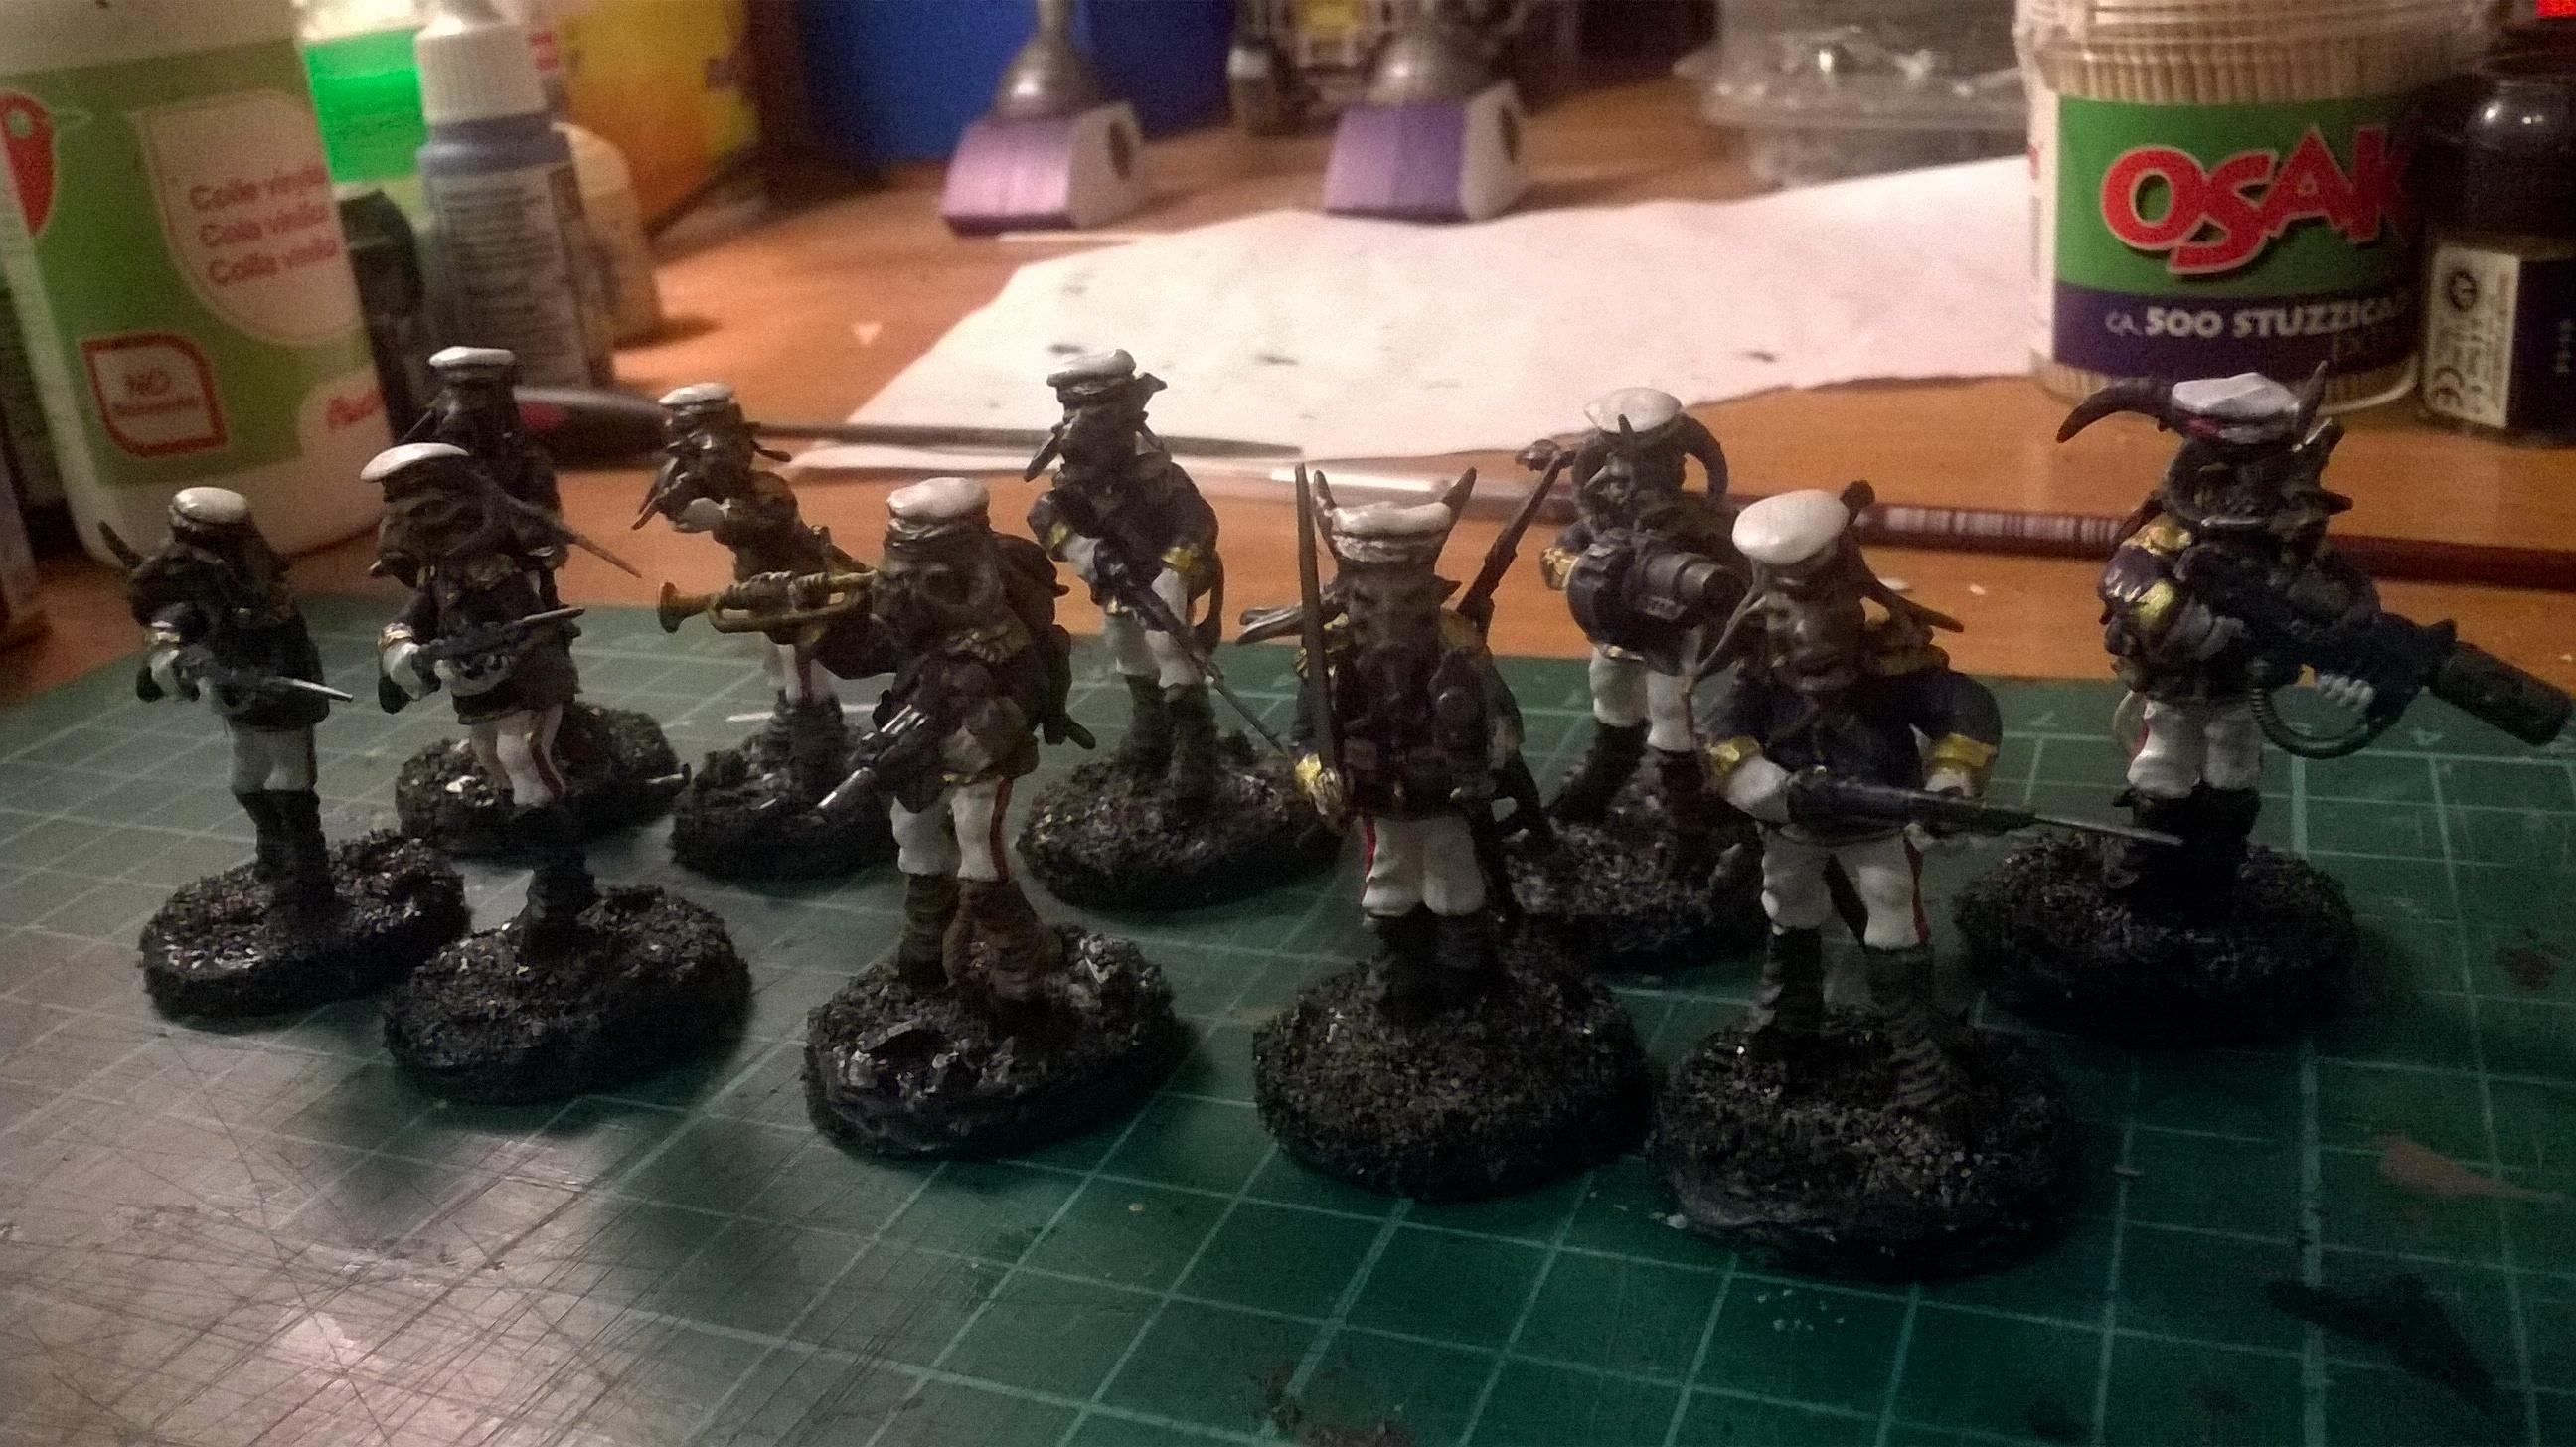 Astra Militarum, Beastmen, Bestigor, Conversion, Imperial Guard